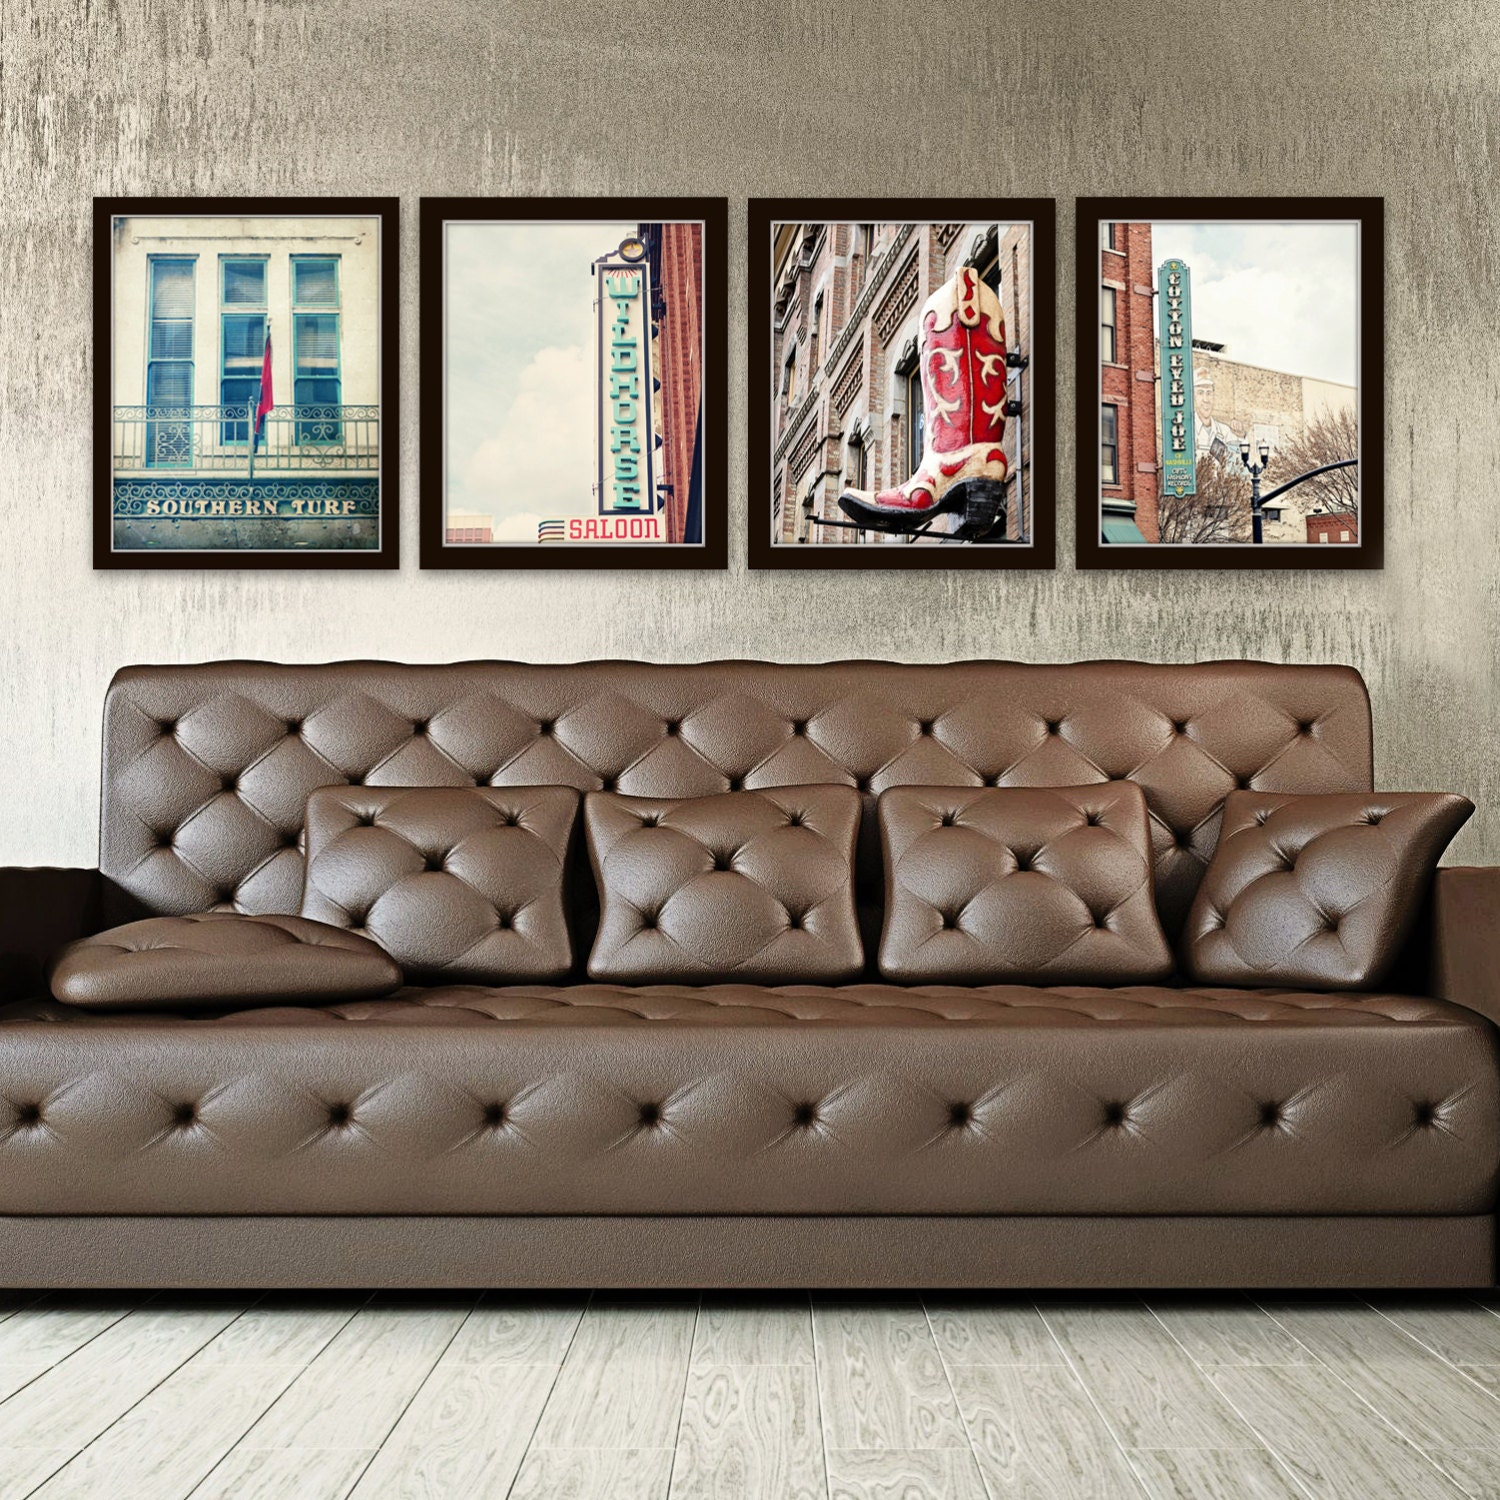 Wall Art Decor With Pictures : Nashville wall art industrial decor city photography set of